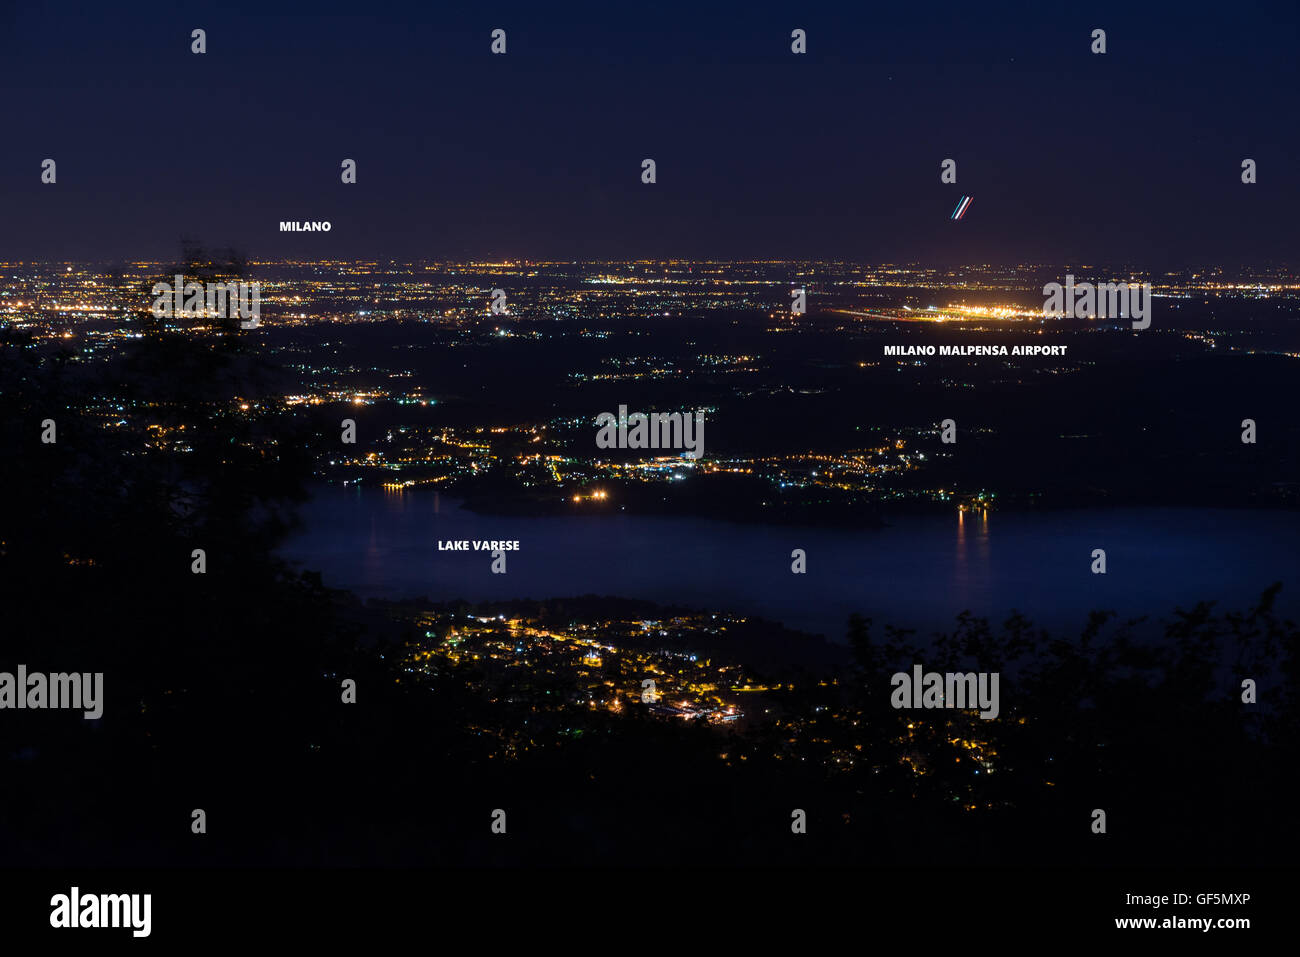 Night view of the airport of Milan Malpensa, Milan and lake Varese - Stock Image